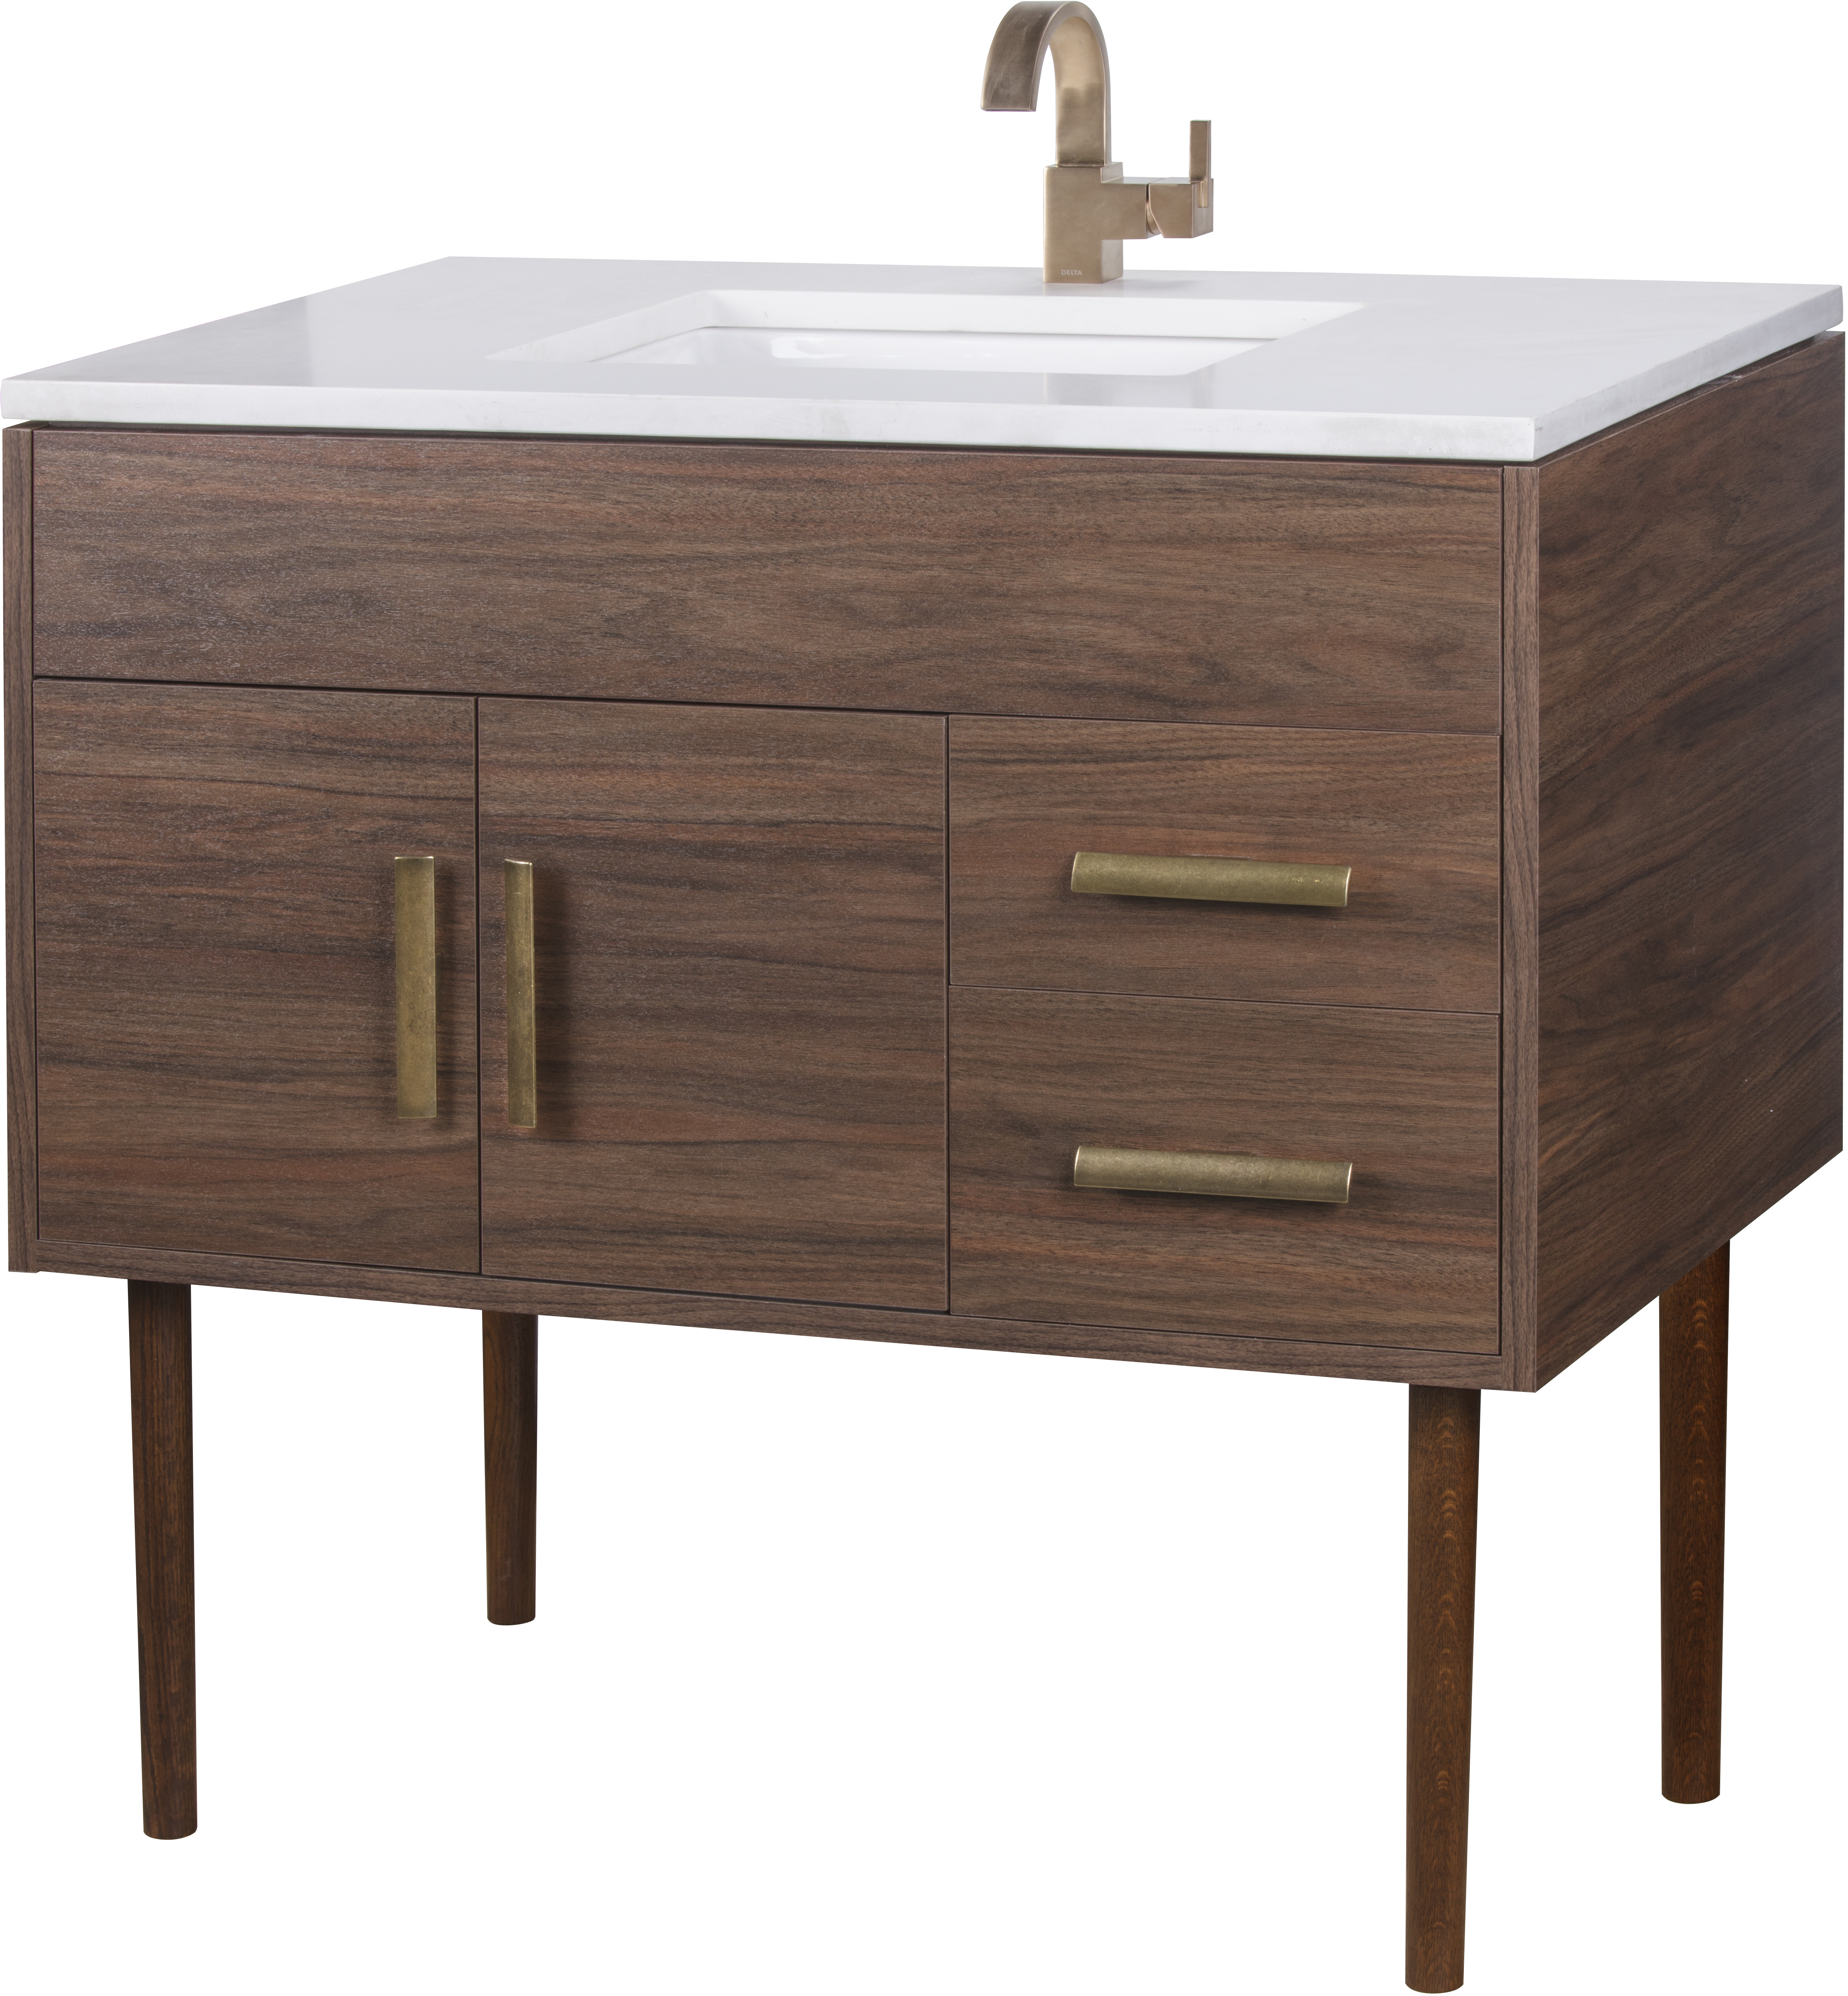 Cutler Kitchen Bath Midcnt36 36 Inch Freestanding Bathroom Vanity With 2 Soft Close Doors Countertop And Sink And European Soft Close Hardware